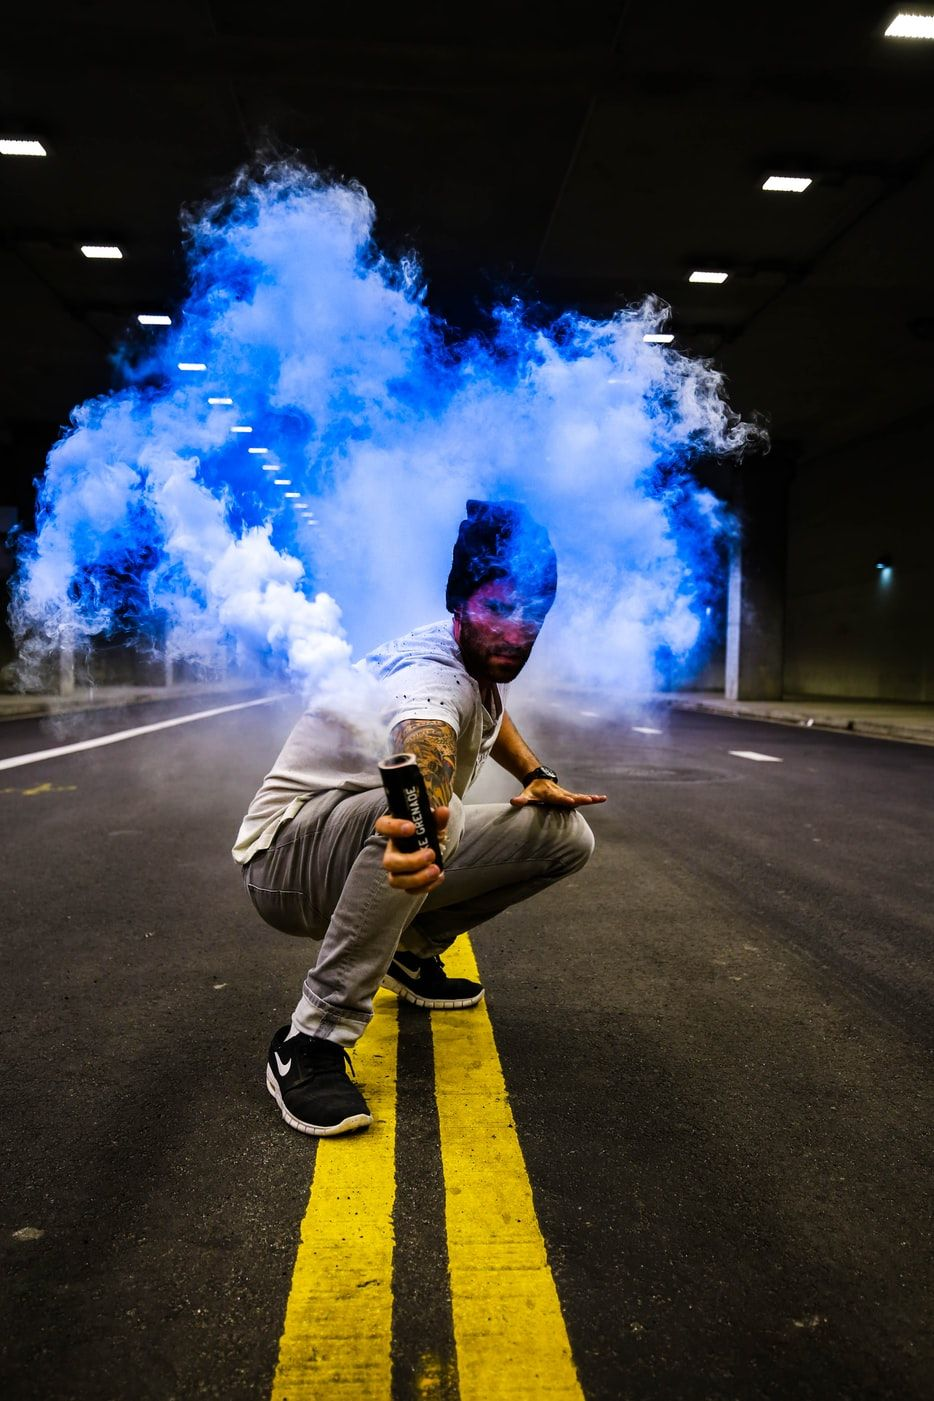 Man Holding Black Tube With Blue Smoke In The Middle Of Road Career In Fashion Designing Fashion Designing Course Fashion Designer List